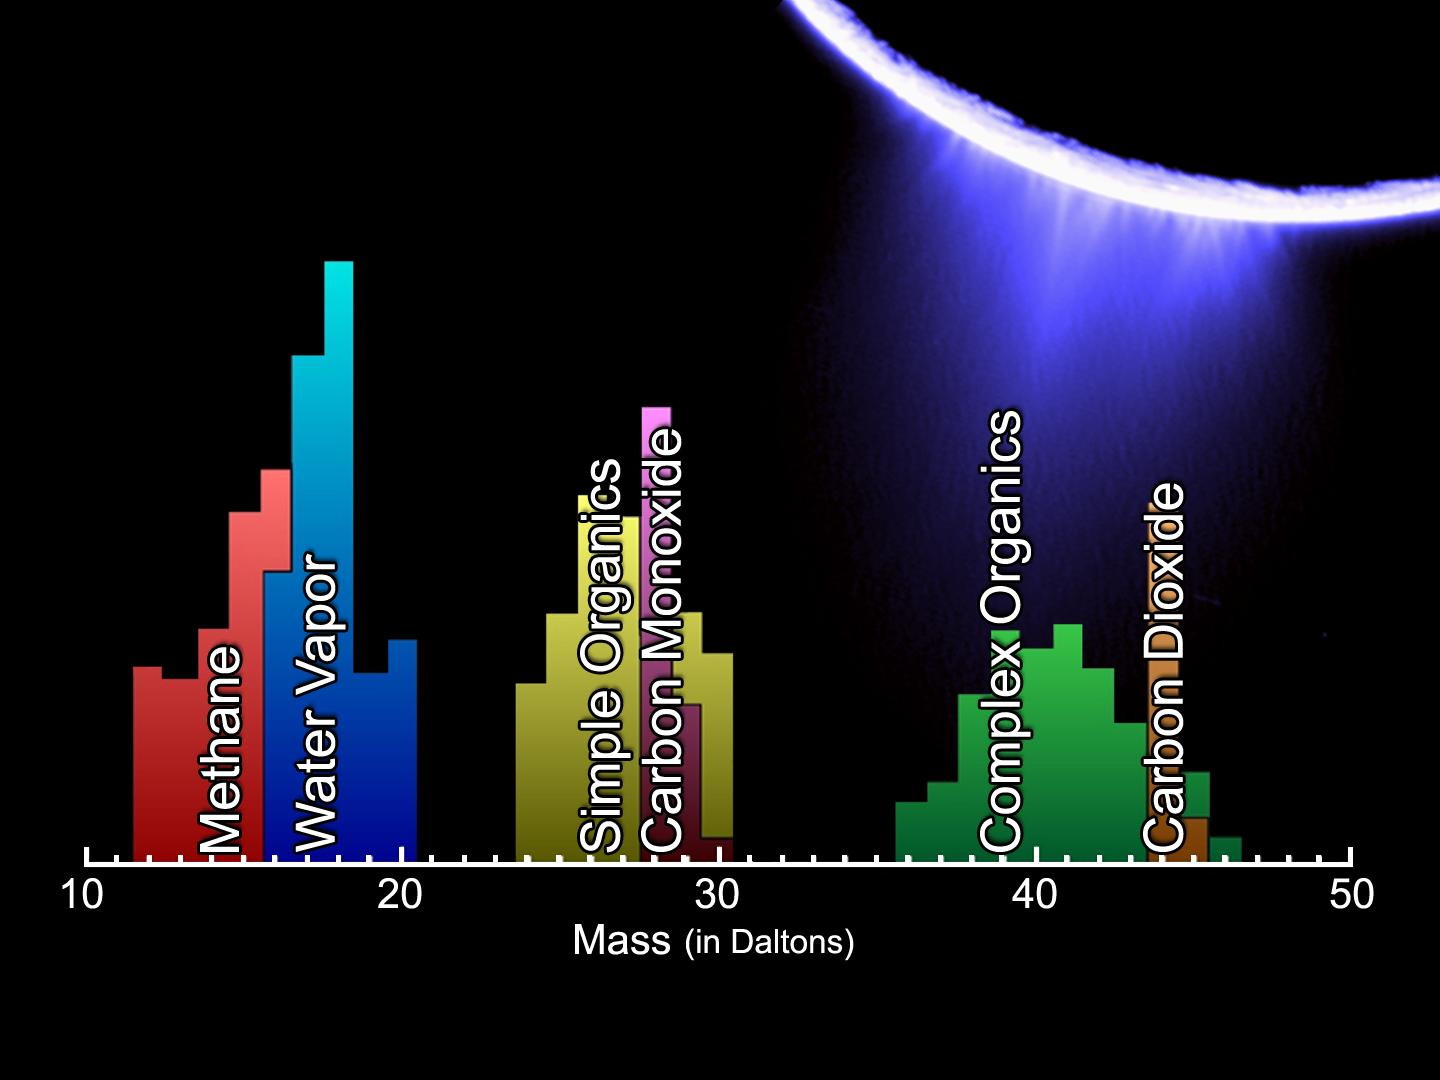 This mass spectrum shows the chemical constituents sampled in Enceladus' plume